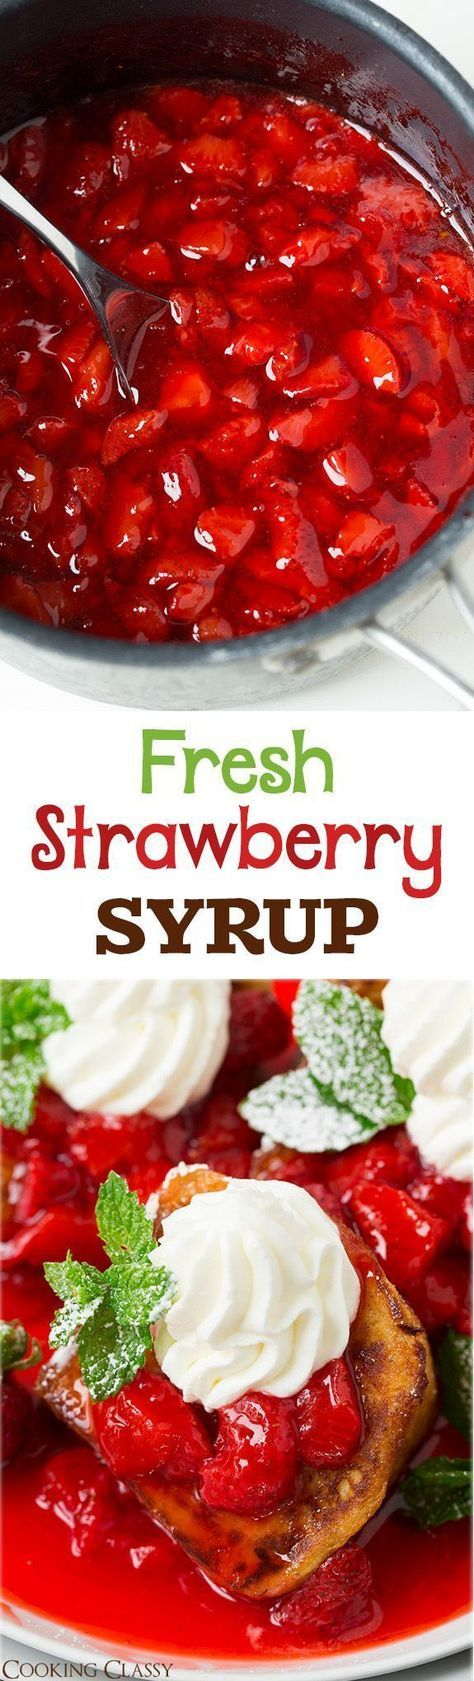 Fresh Strawberry Syrup - this syrup is AMAZING! I love that it's not too sweet. It's perfect for pancakes, waffles, french toast, ice cream or oatmeal!